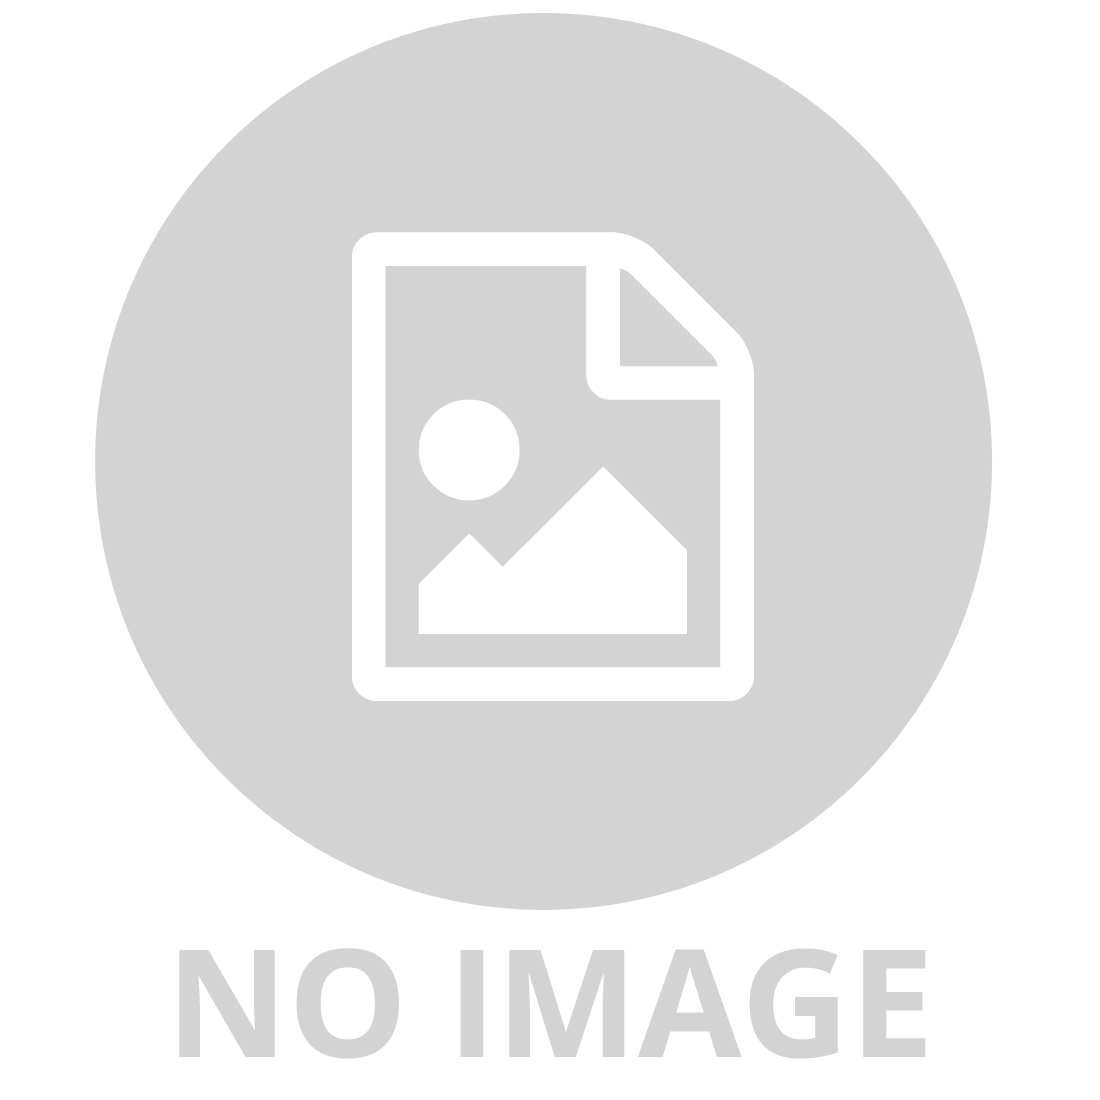 LEAP FROG MY FIRST LAPTOP